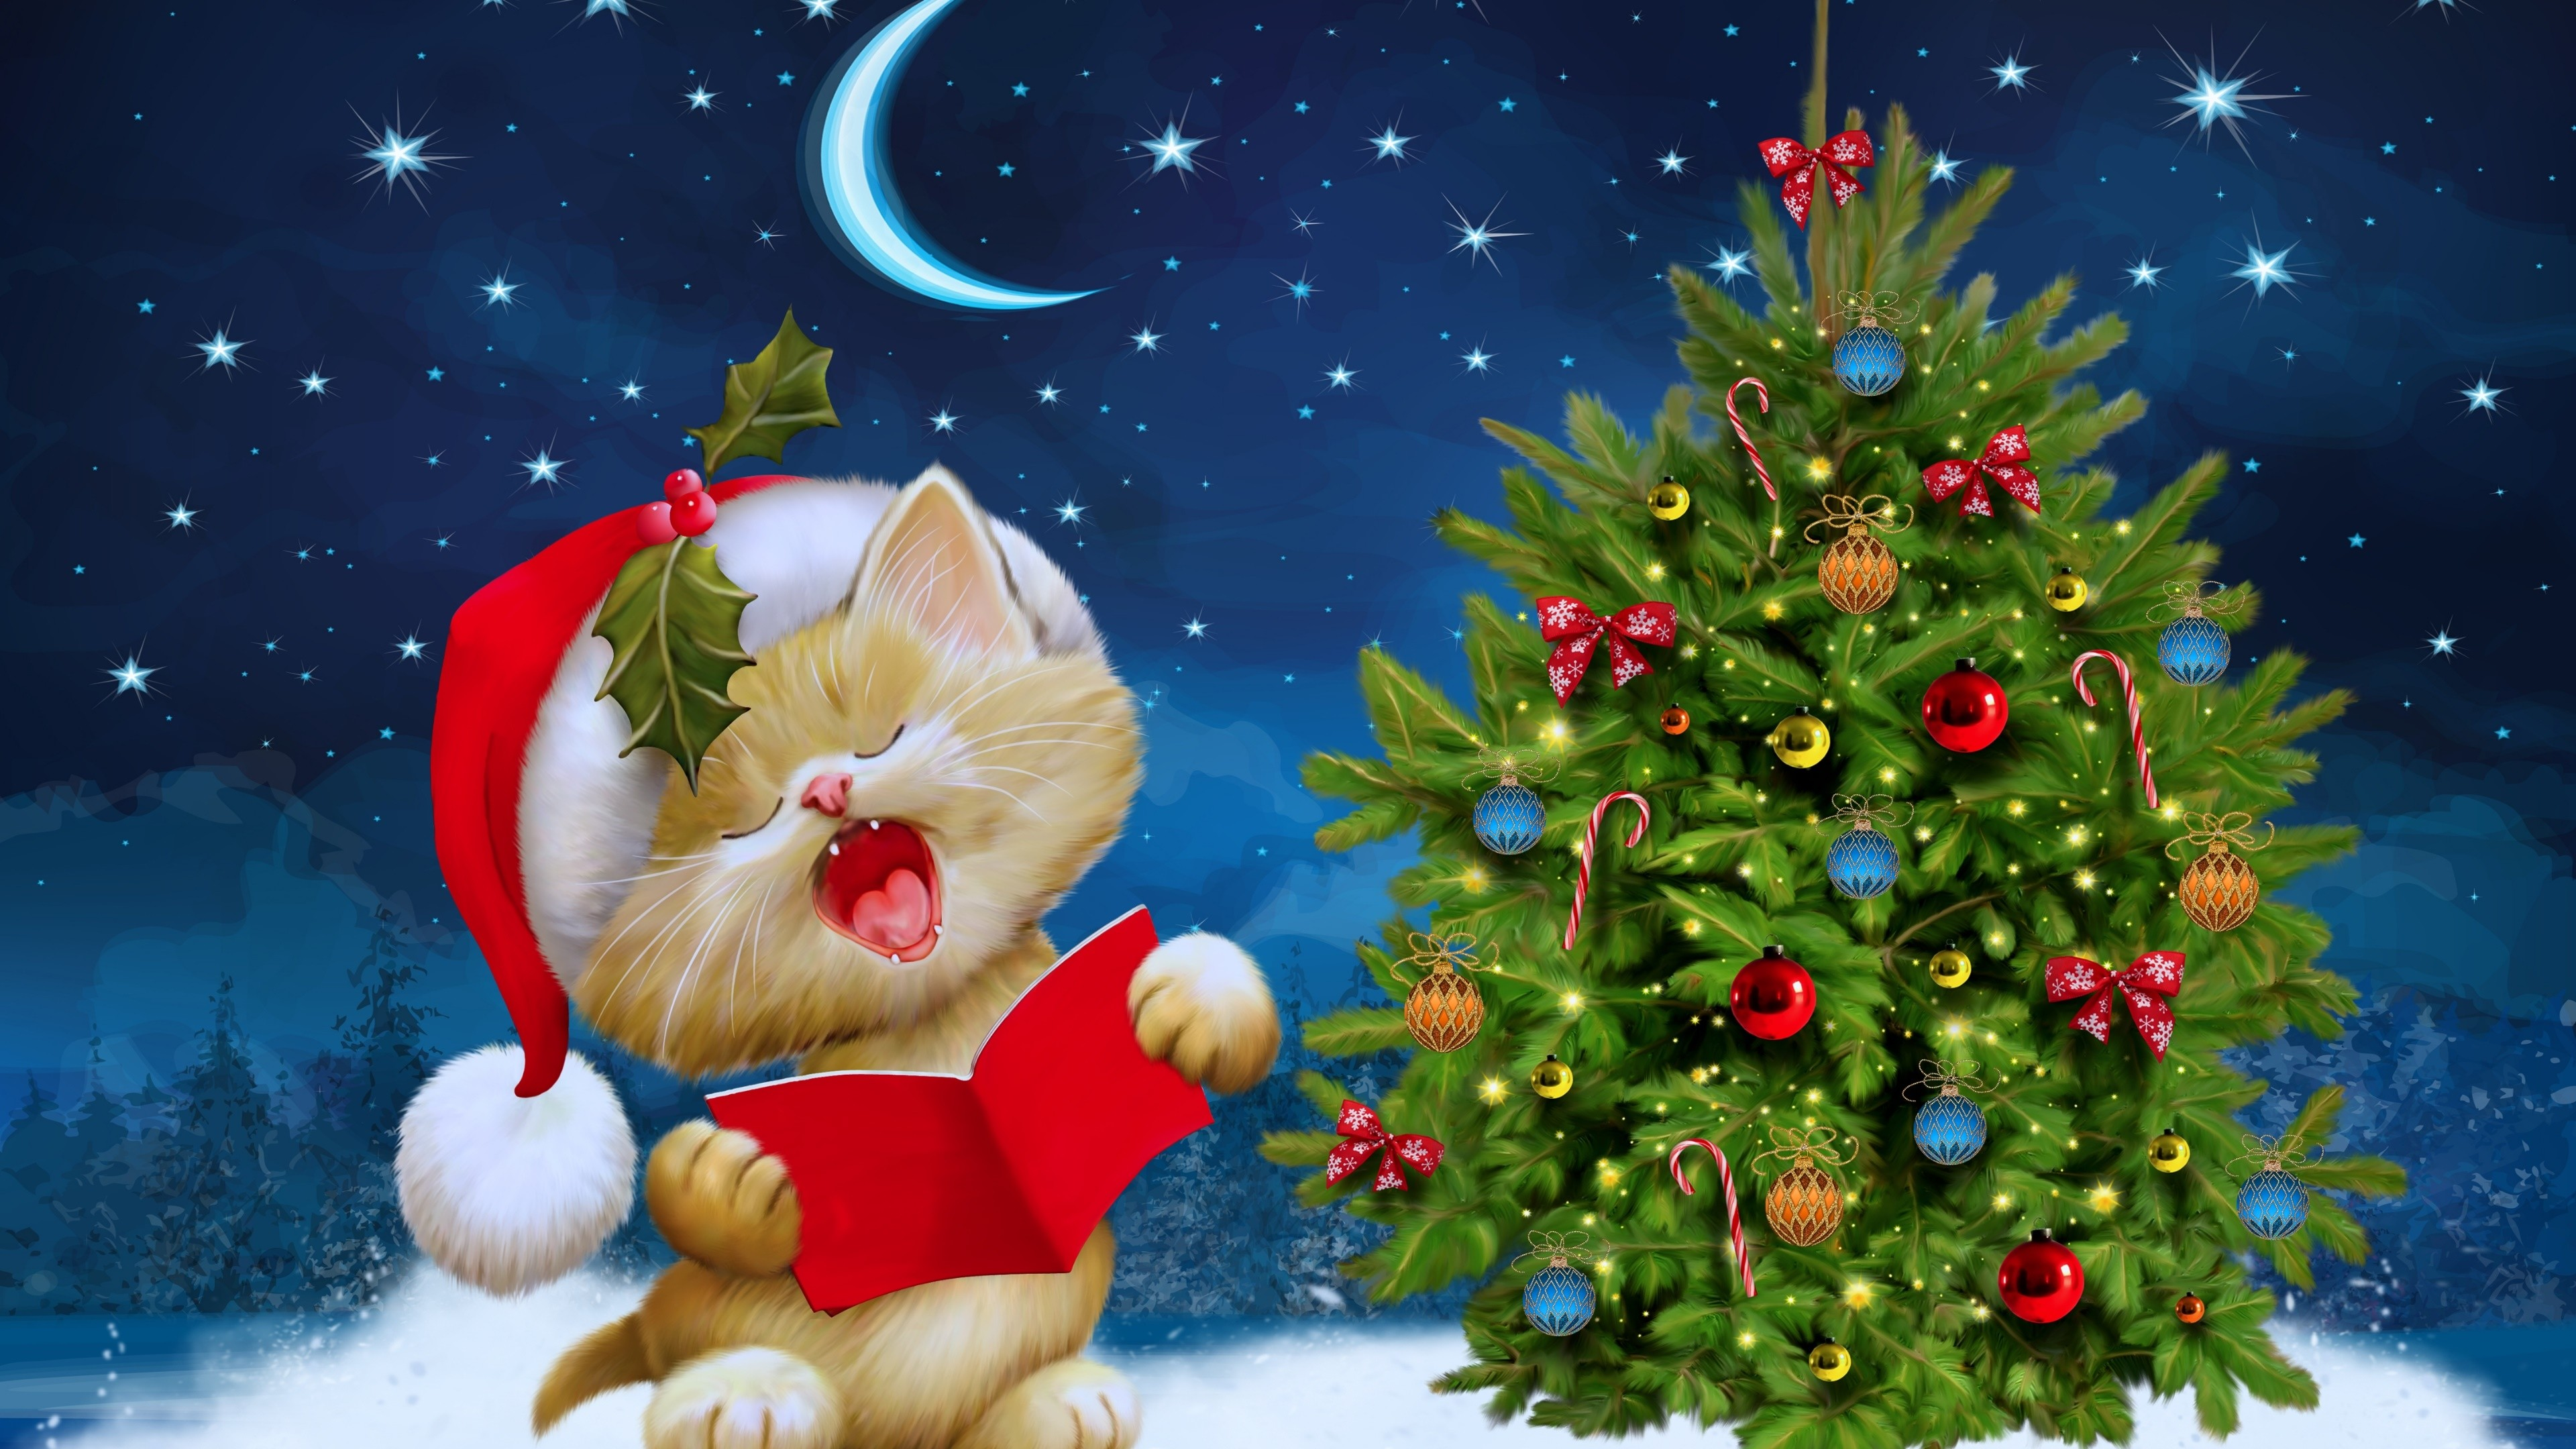 Download Images Of Christmas Tree